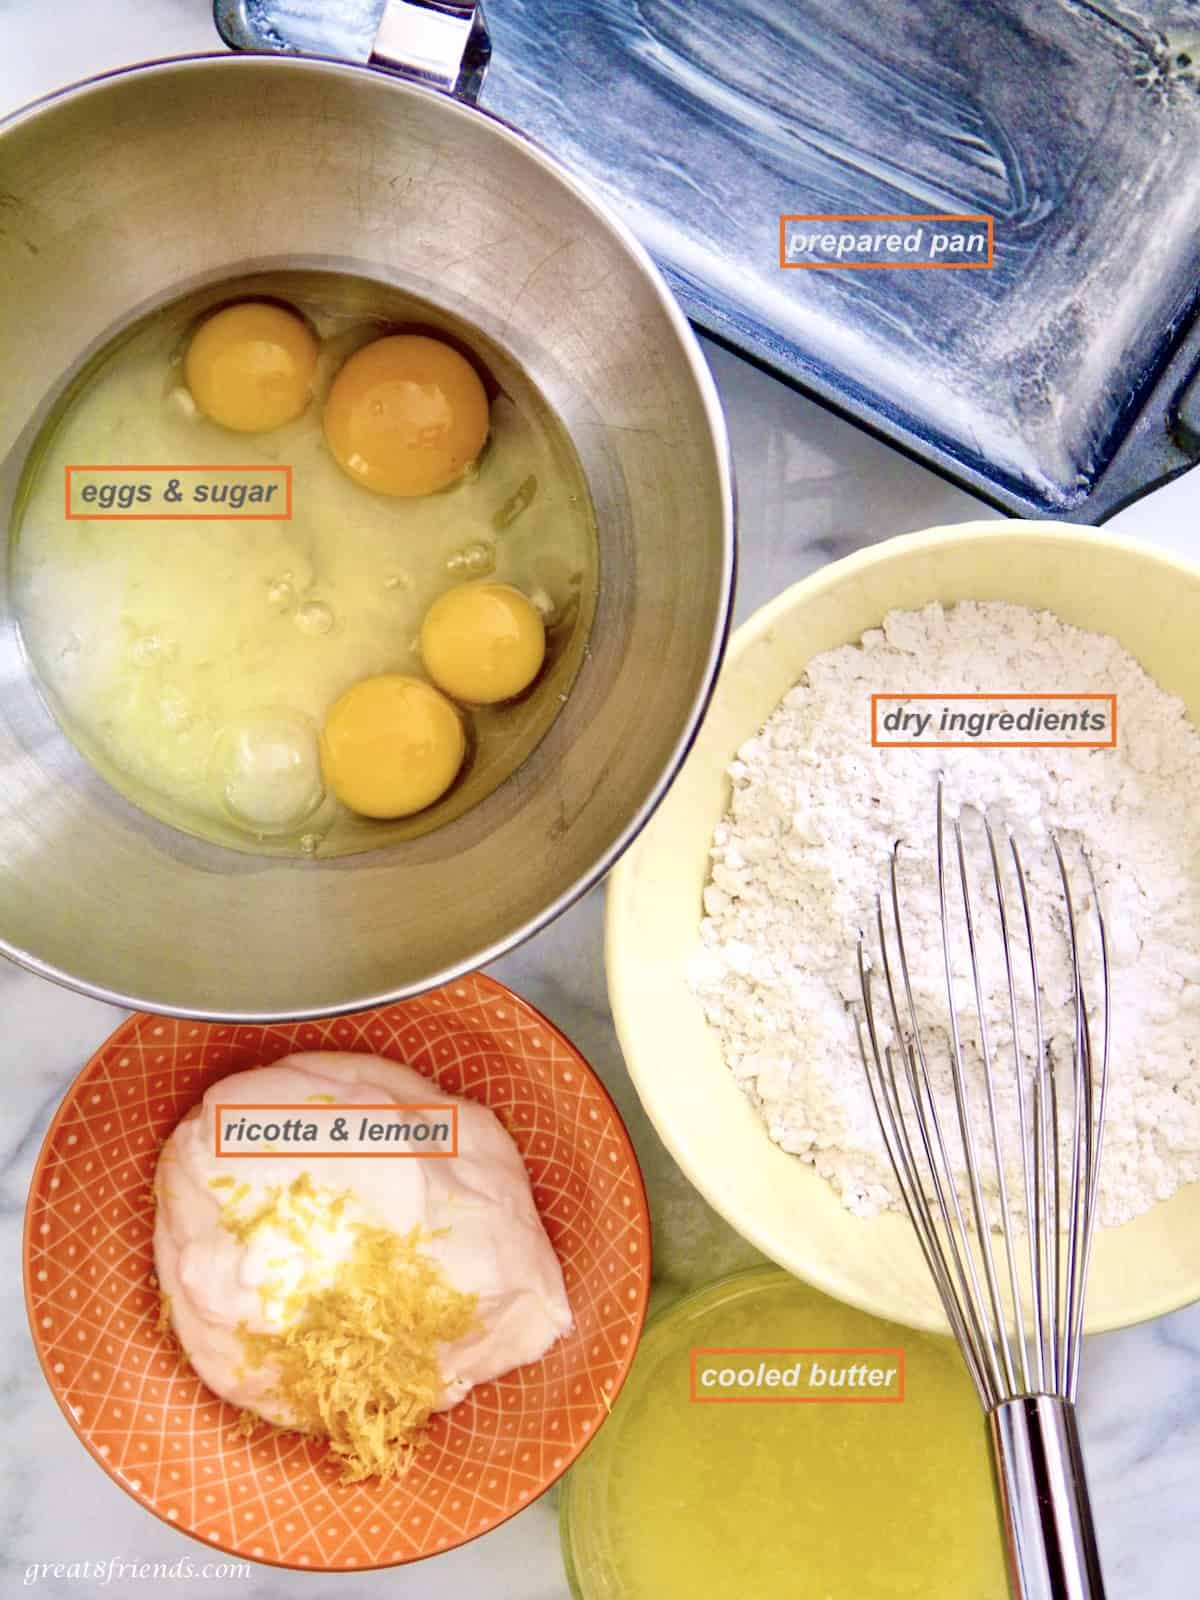 All the ingredients needed for a lemon ricotta cake.